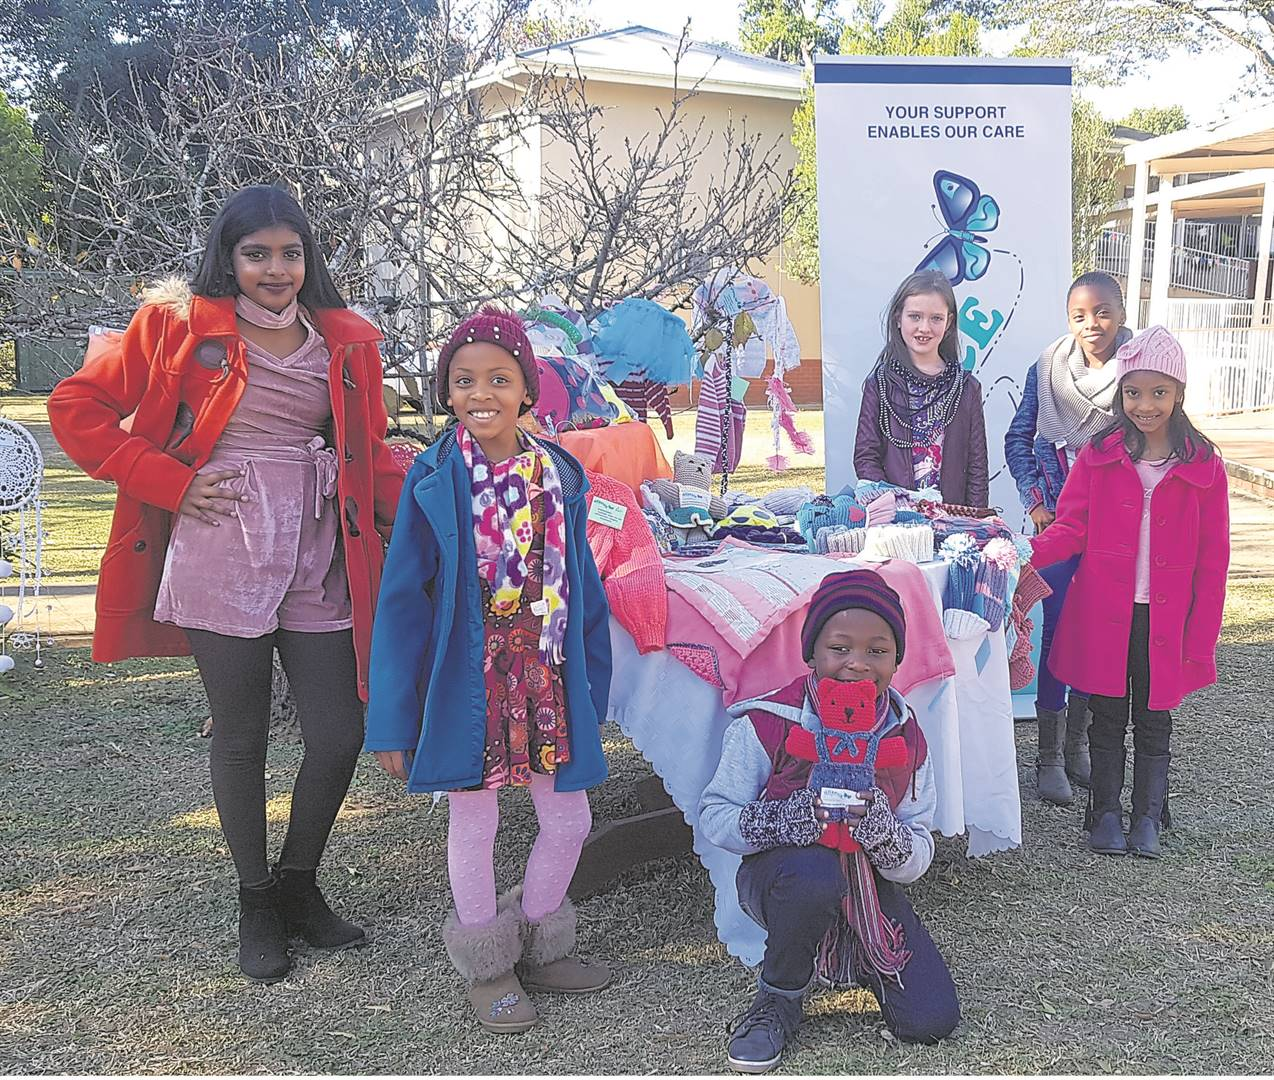 PHOTO: byrone athmanThe Msunduzi Hospice Association will be hosting their annual Winter Fair on July 27 from 8 am to 1 pm. Various activities will be available for the enjoyment of children including a kids corner with fun and games, face painting, a jumping castle, a variety of stalls with handmade crafts on sale, among other things. Entry to the fair is R5 per person. For any queries please contact Tanya Roux at 033 344 1560 or 082 699 9105. Showing their support for the Winter Fair are Irene's Models pupils (from left) Diya Ramchander, Andiswa Phewa, Sonwabile Jili, Prisha Padayachee, Noluthando Phewa, and Julie-Anna Sparrow.